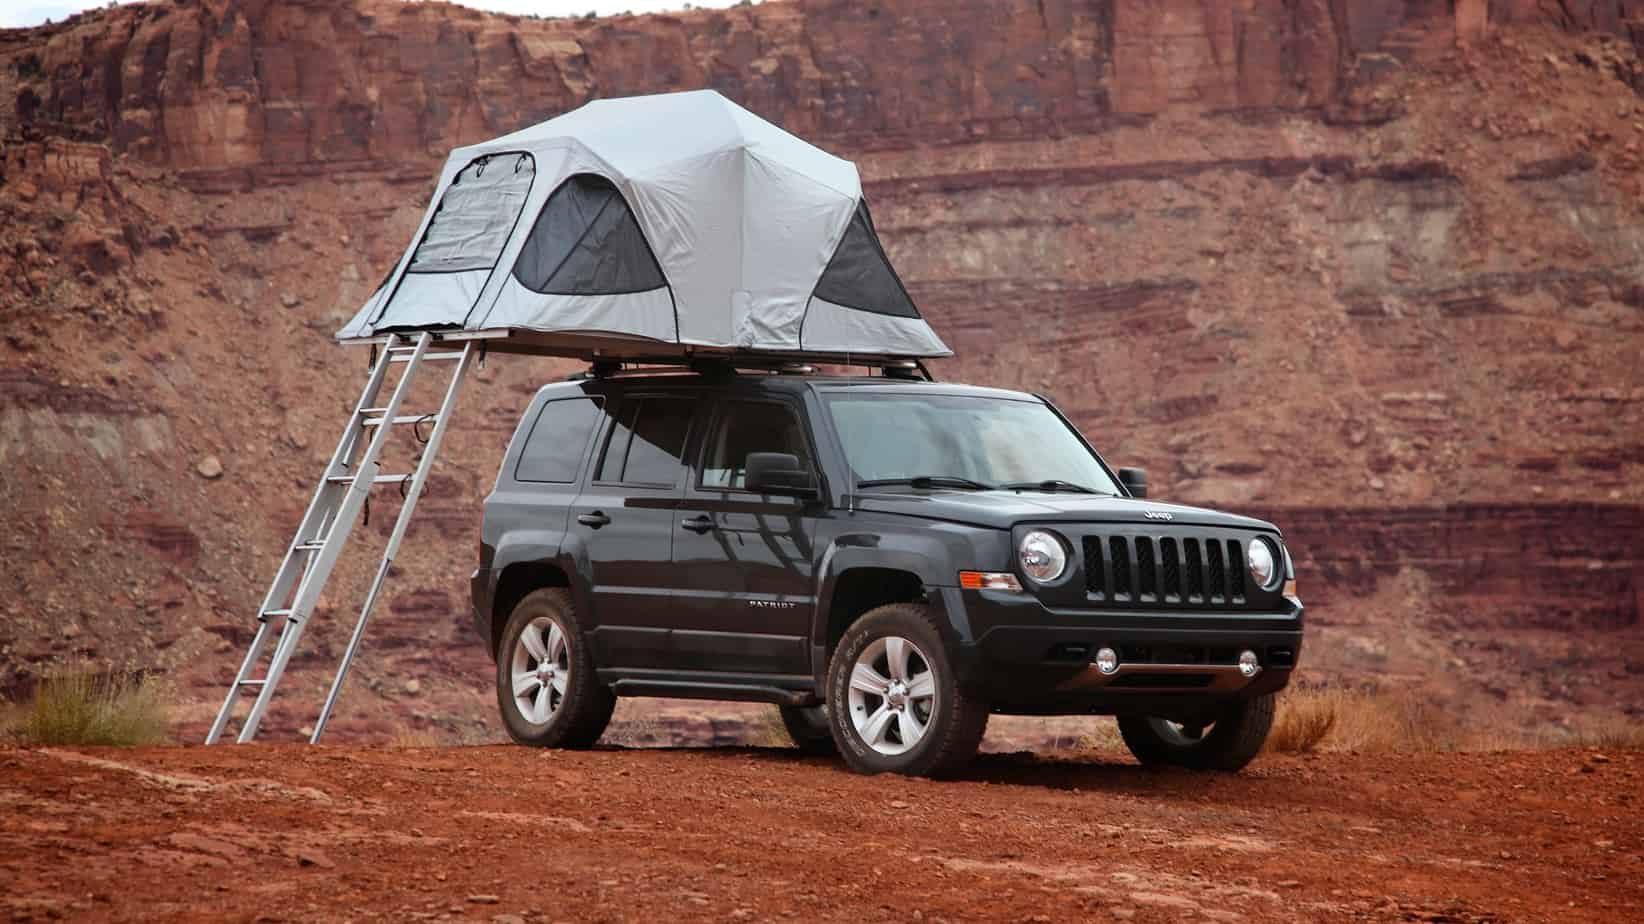 Jeep Patriot Roof Top Tent & 20+ Jeep Patriot Tent Pictures and Ideas on STEM Education Caucus